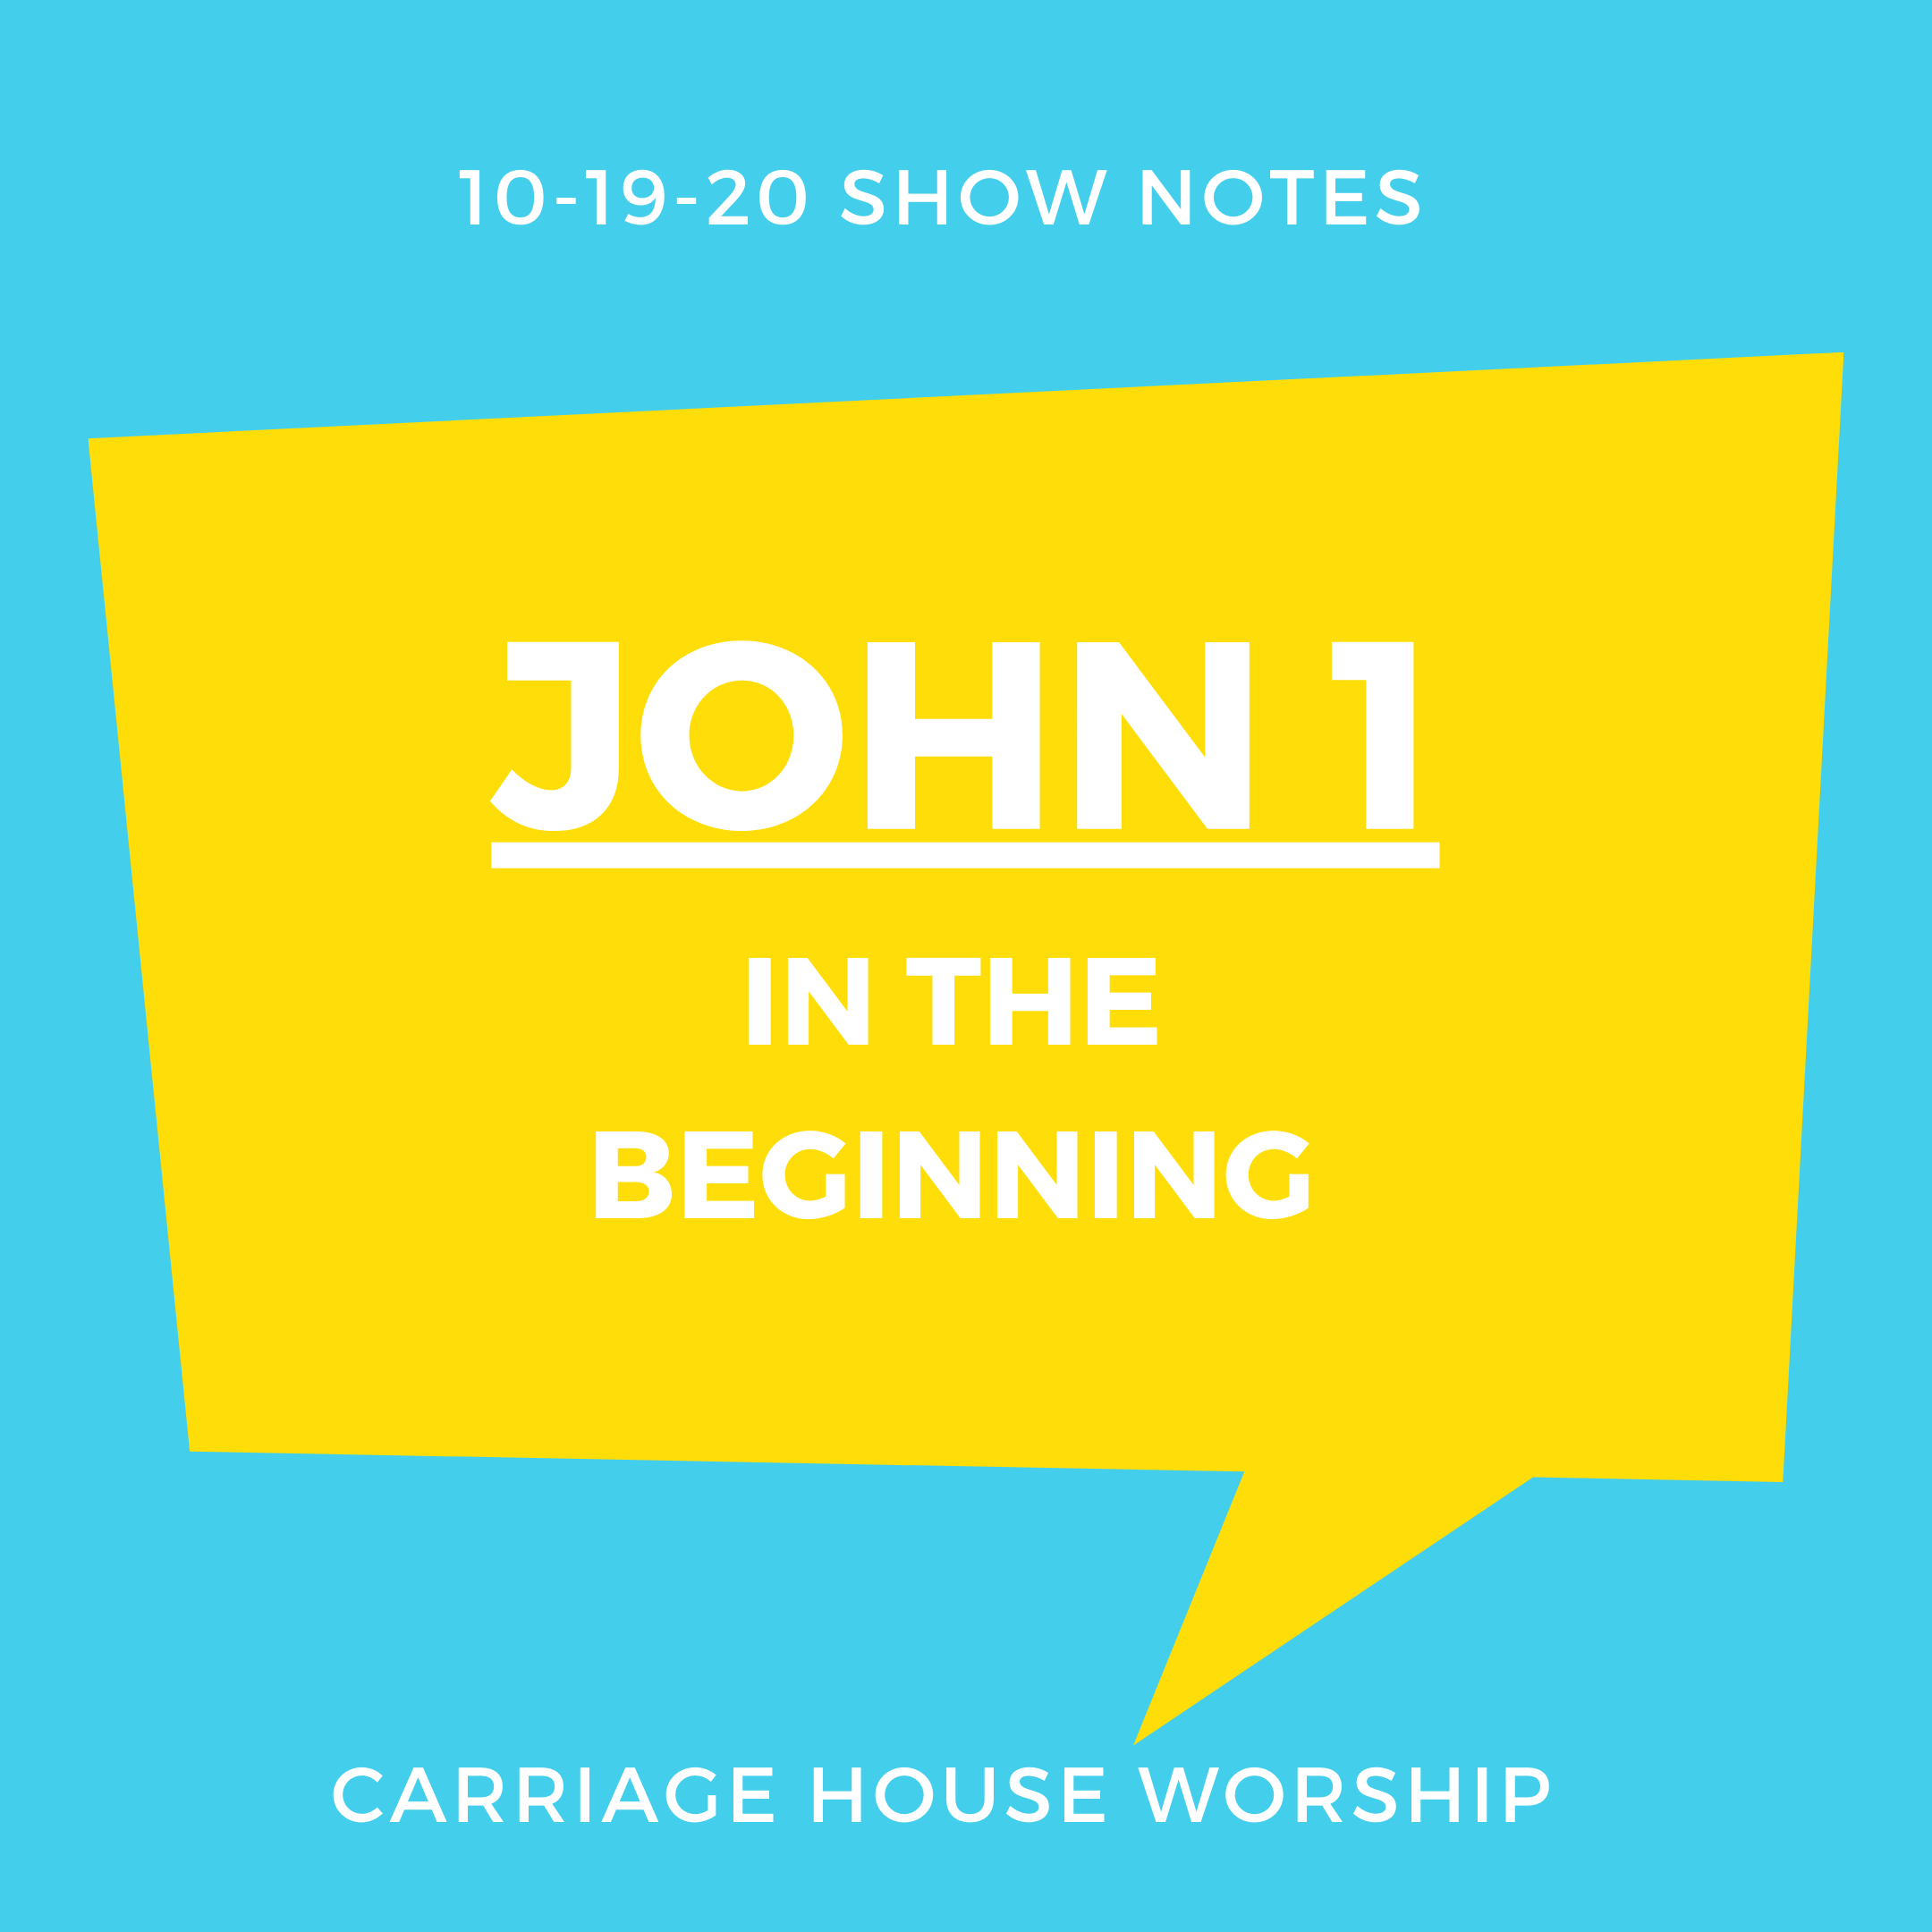 Show Notes - 10-19-20 John 1 In the Beginning